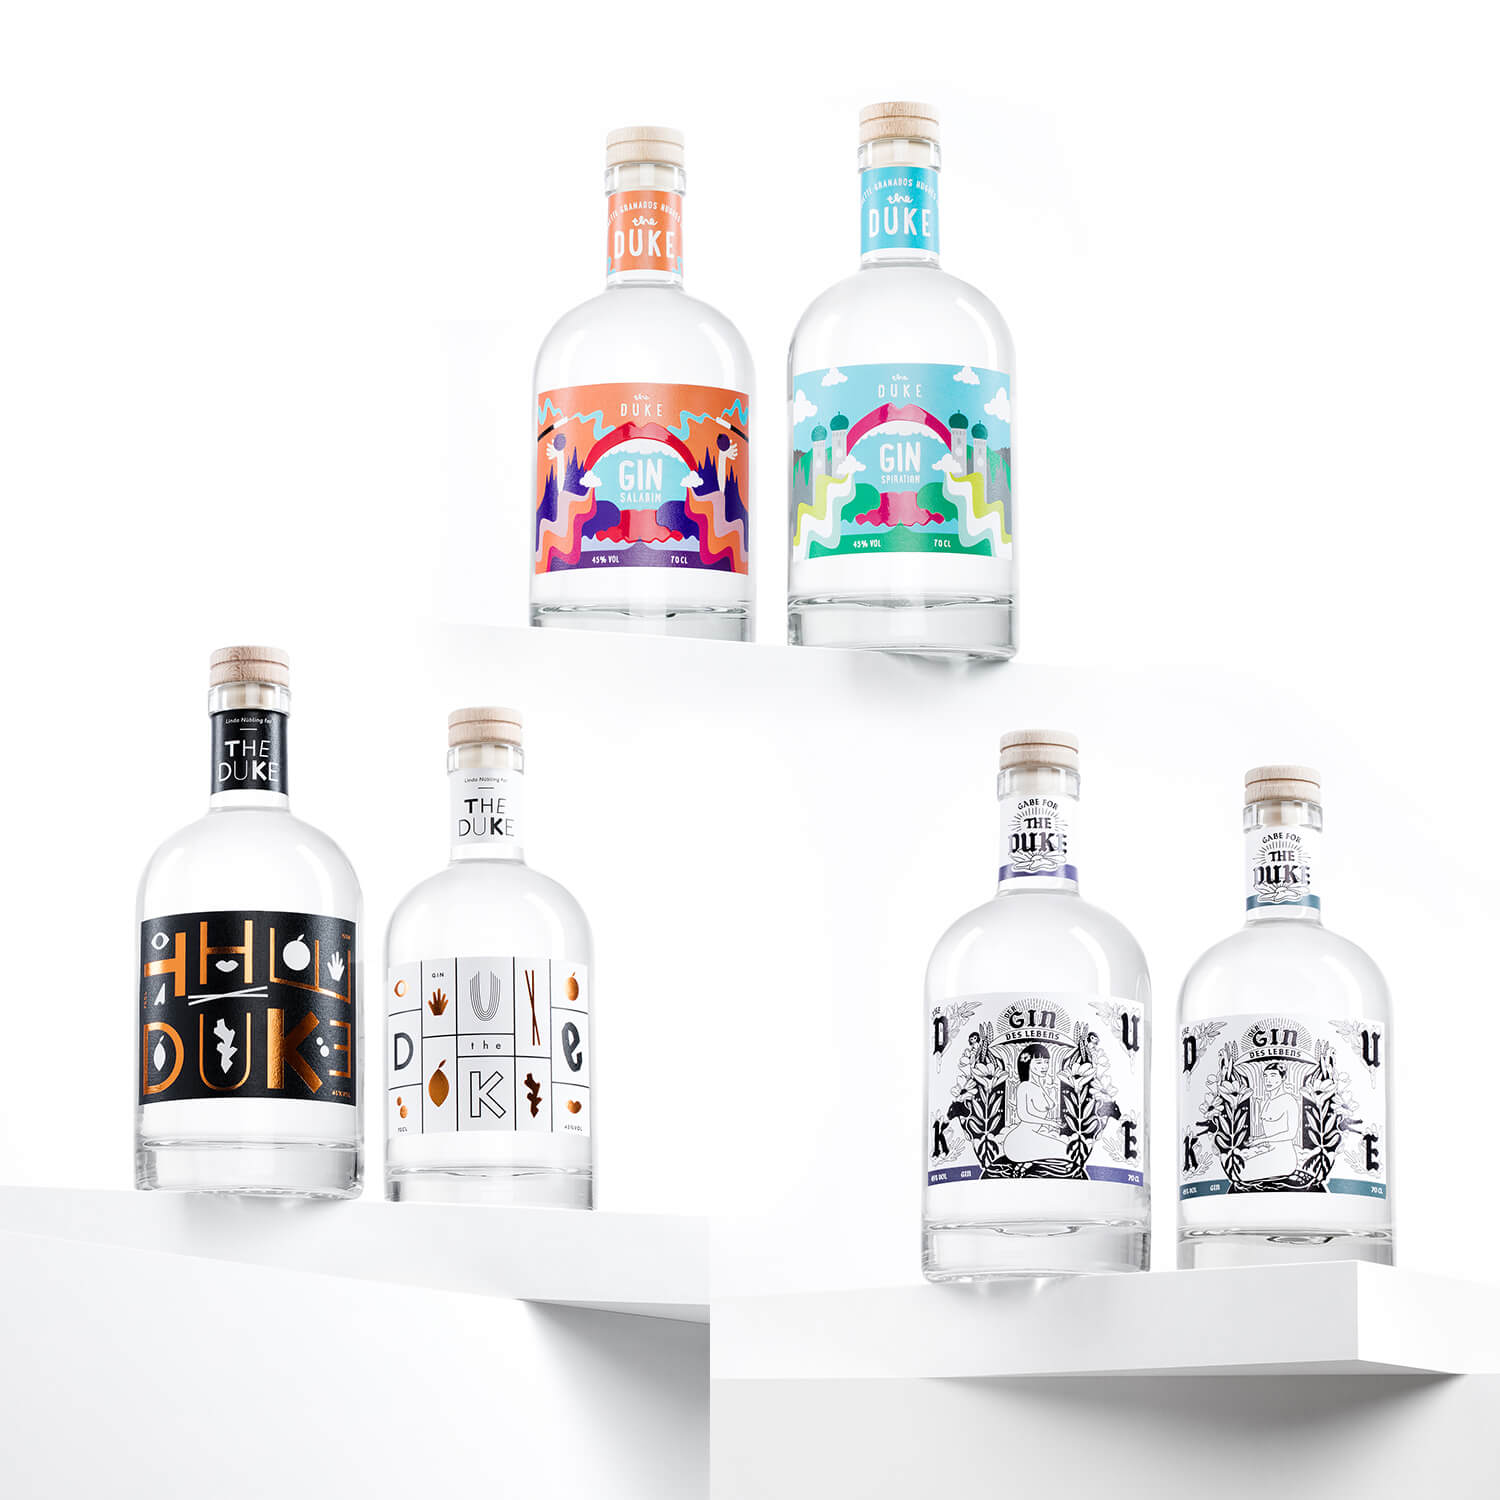 THE DUKE Gin – Limited Art Edition